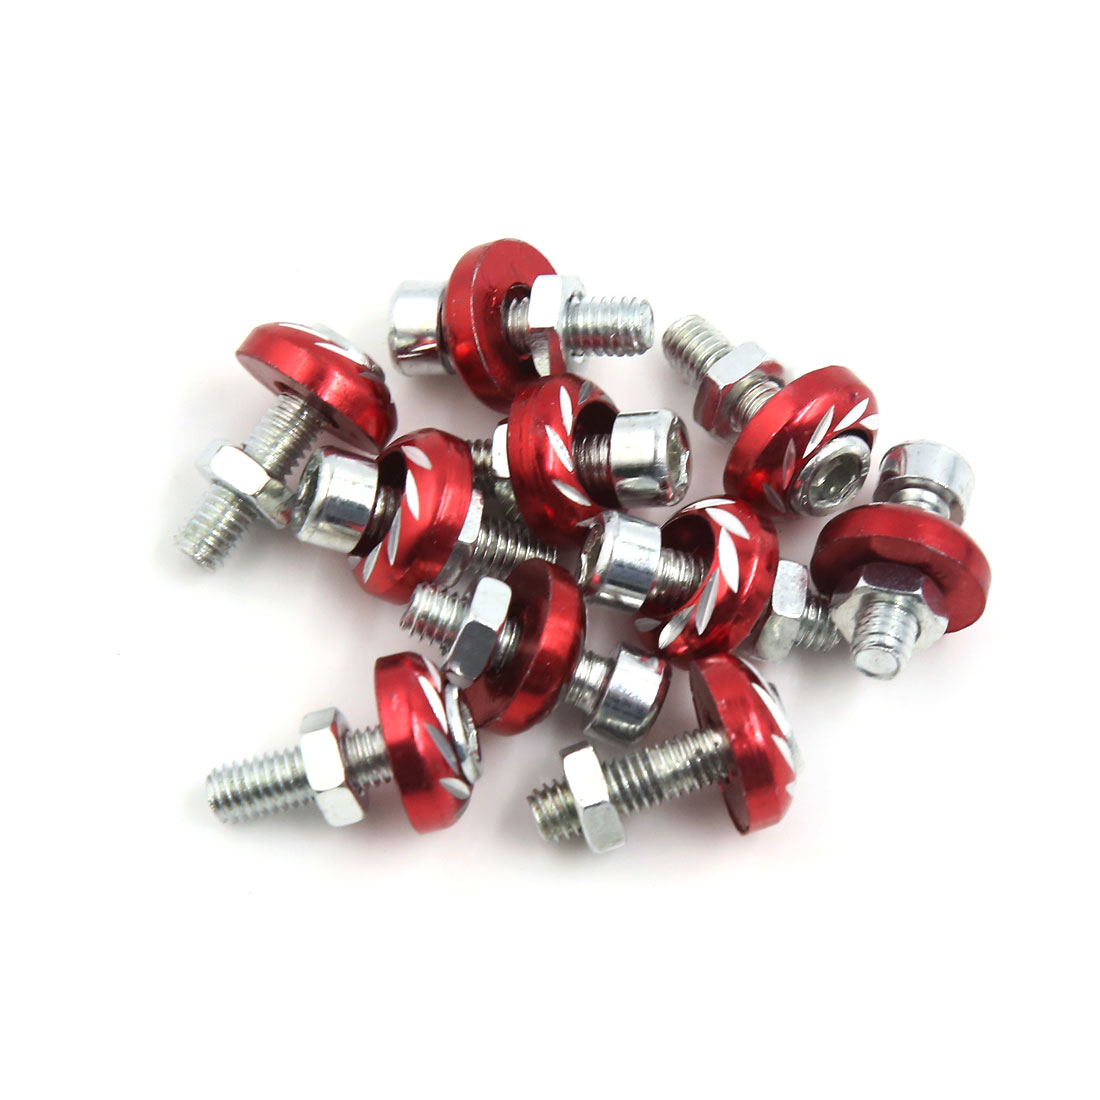 10 Pcs 6mm Thread Dia Red Motorcycle Car Decorative License Plate Bolts Screws